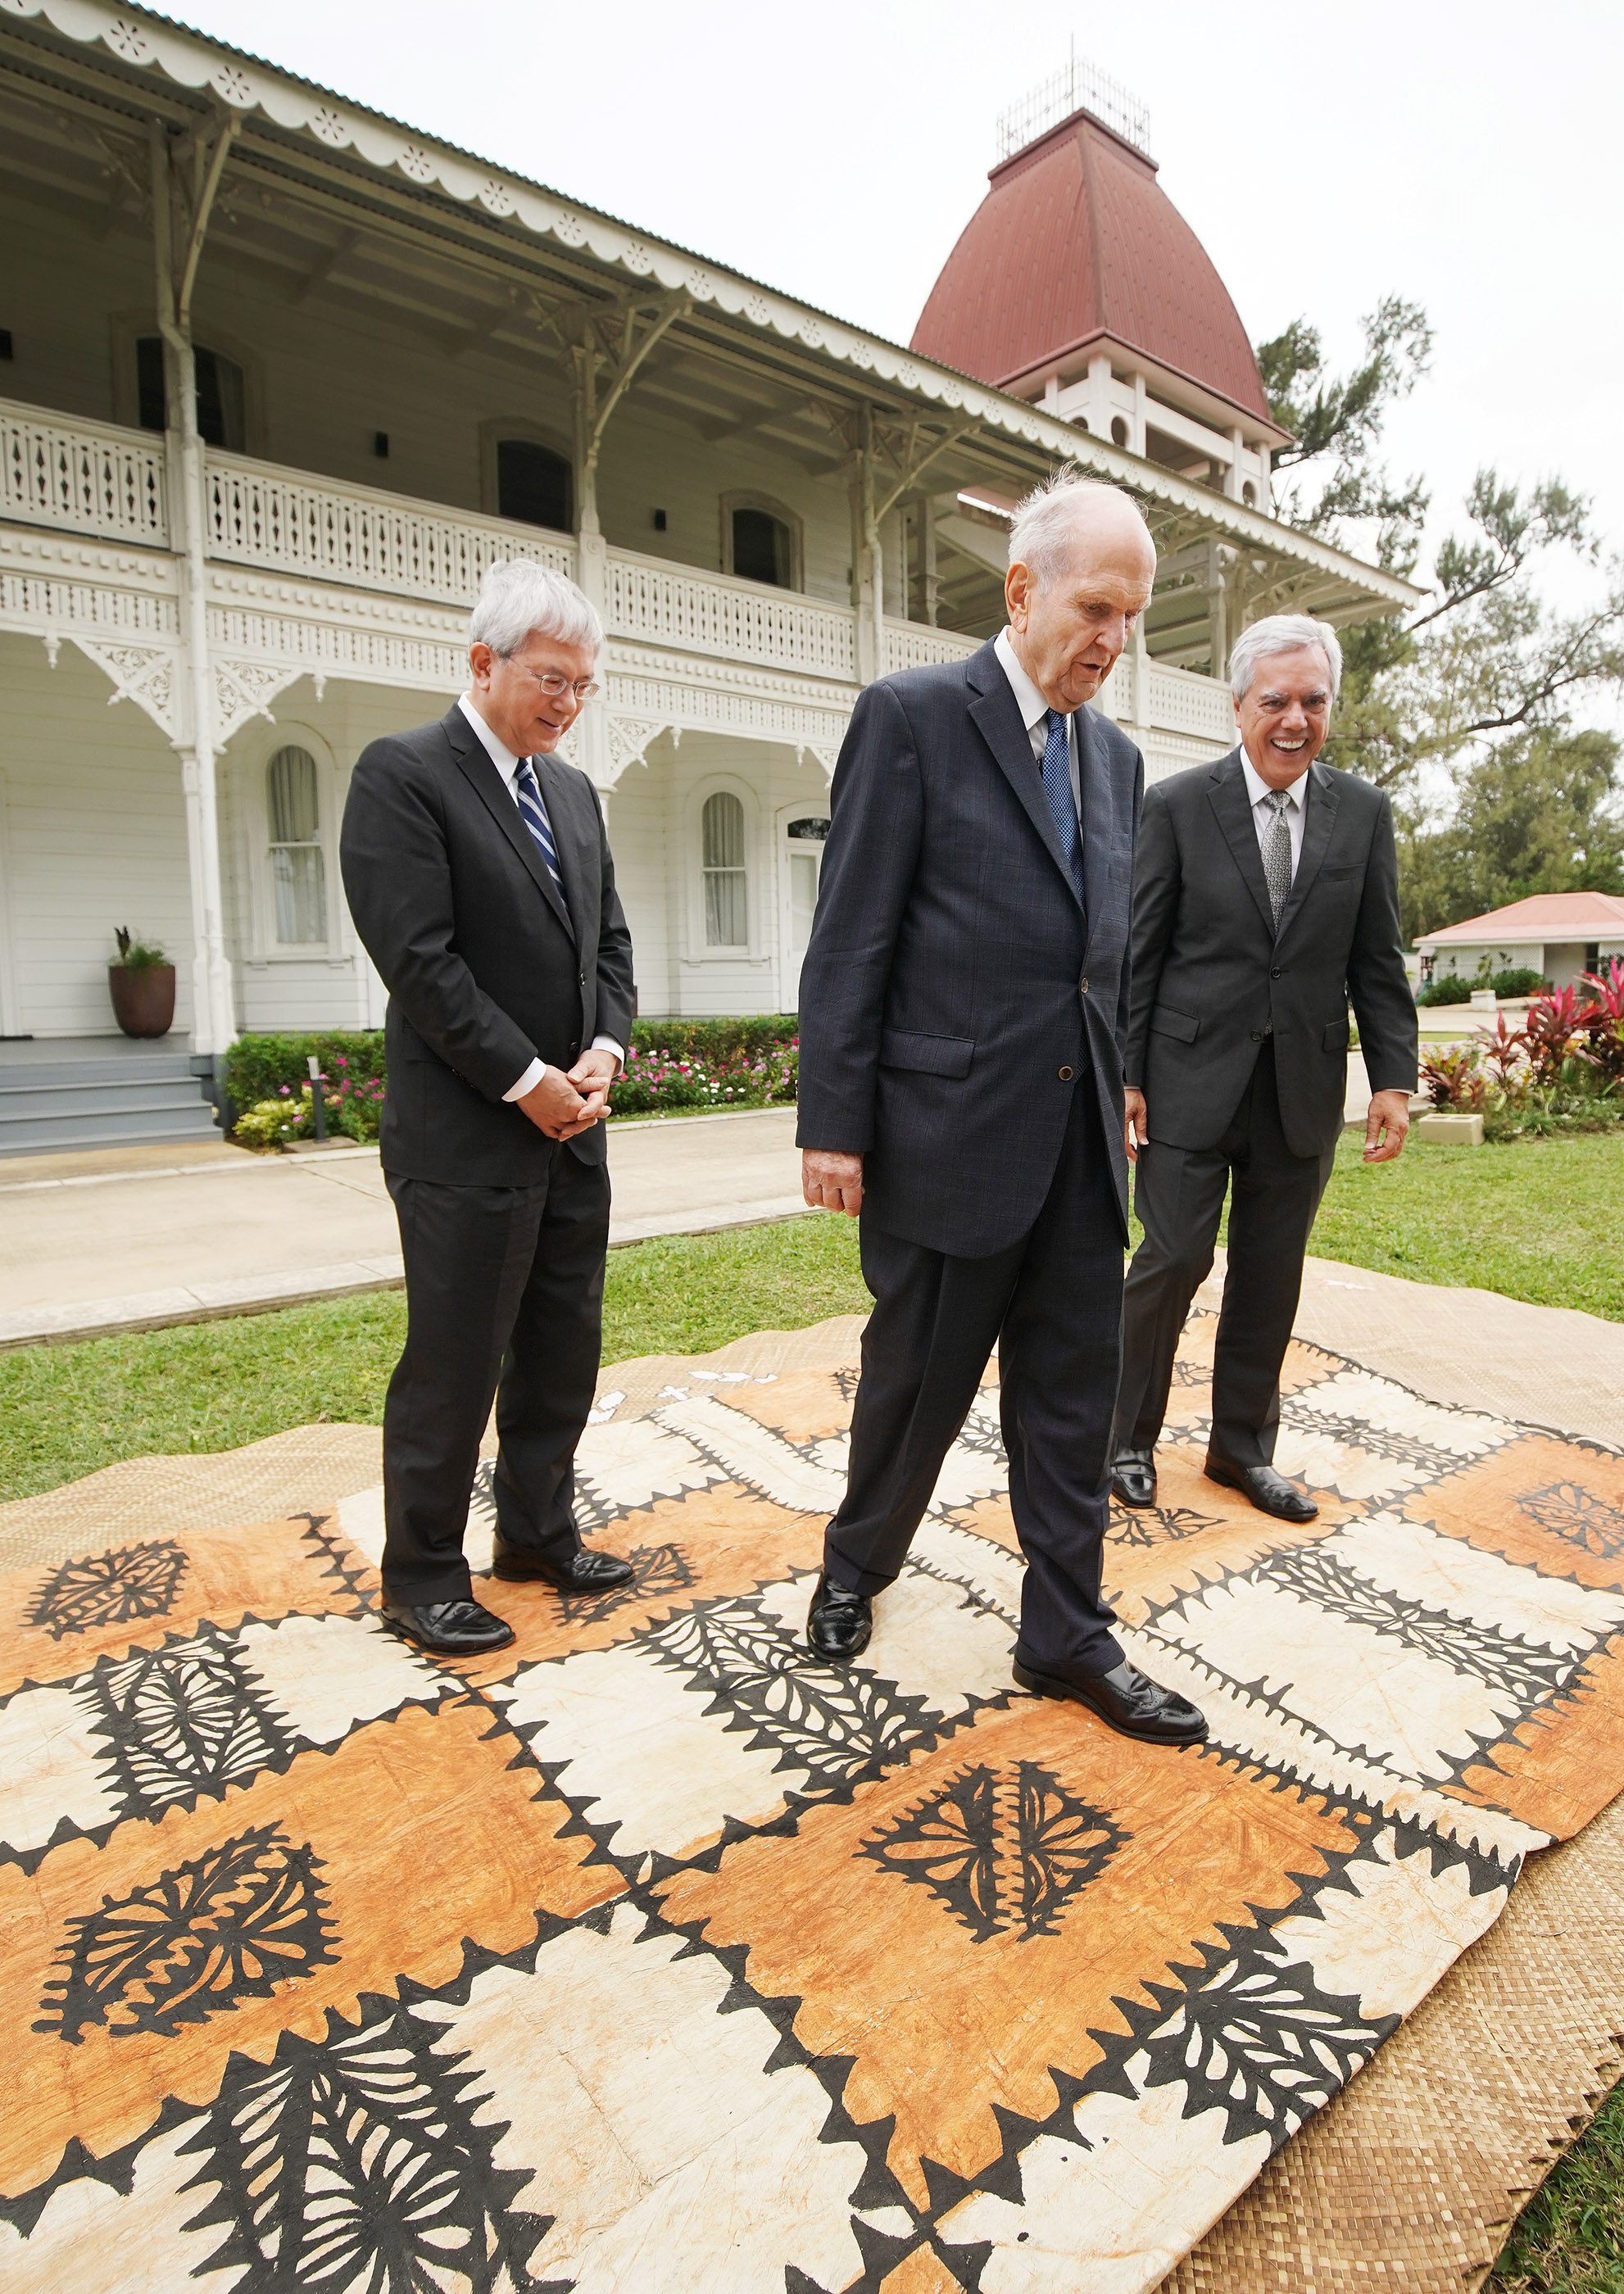 President Russell M. Nelson of The Church of Jesus Christ of Latter-day Saints, Elder Gerrit W. Gong of the Quorum of the Twelve Apostles and Elder O. Vincent Halleck leave the Royal Palace after meeting with 'Aho'eitu Tupou VI, King of Tonga, in Tonga on May 23, 2019.